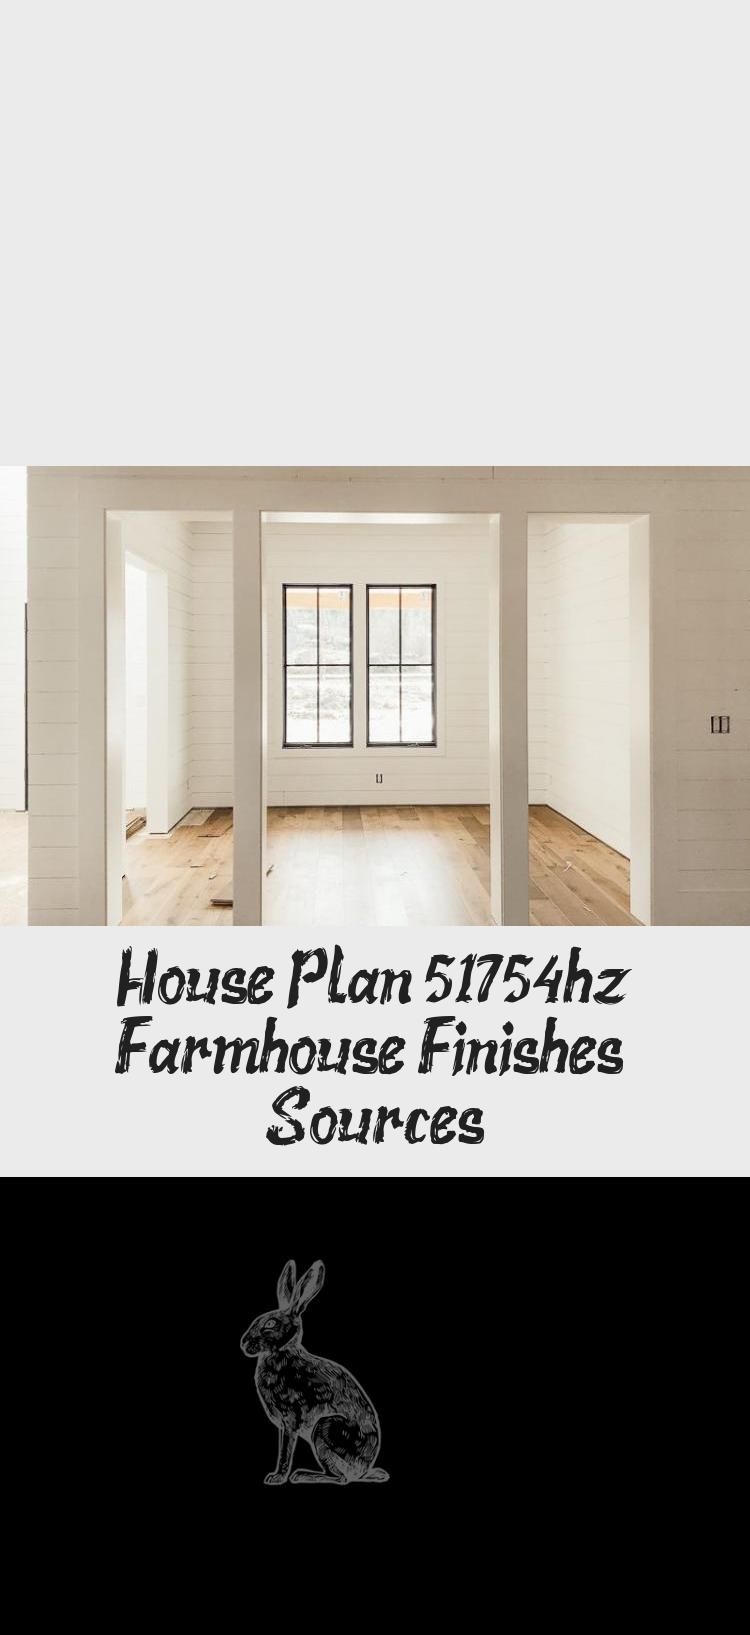 House Plan 51754hz Farmhouse Finishes Sources Small Town Farmhouse Countryhomelivingroom Country In 2020 House Plans Country Home Magazine Country House Interior